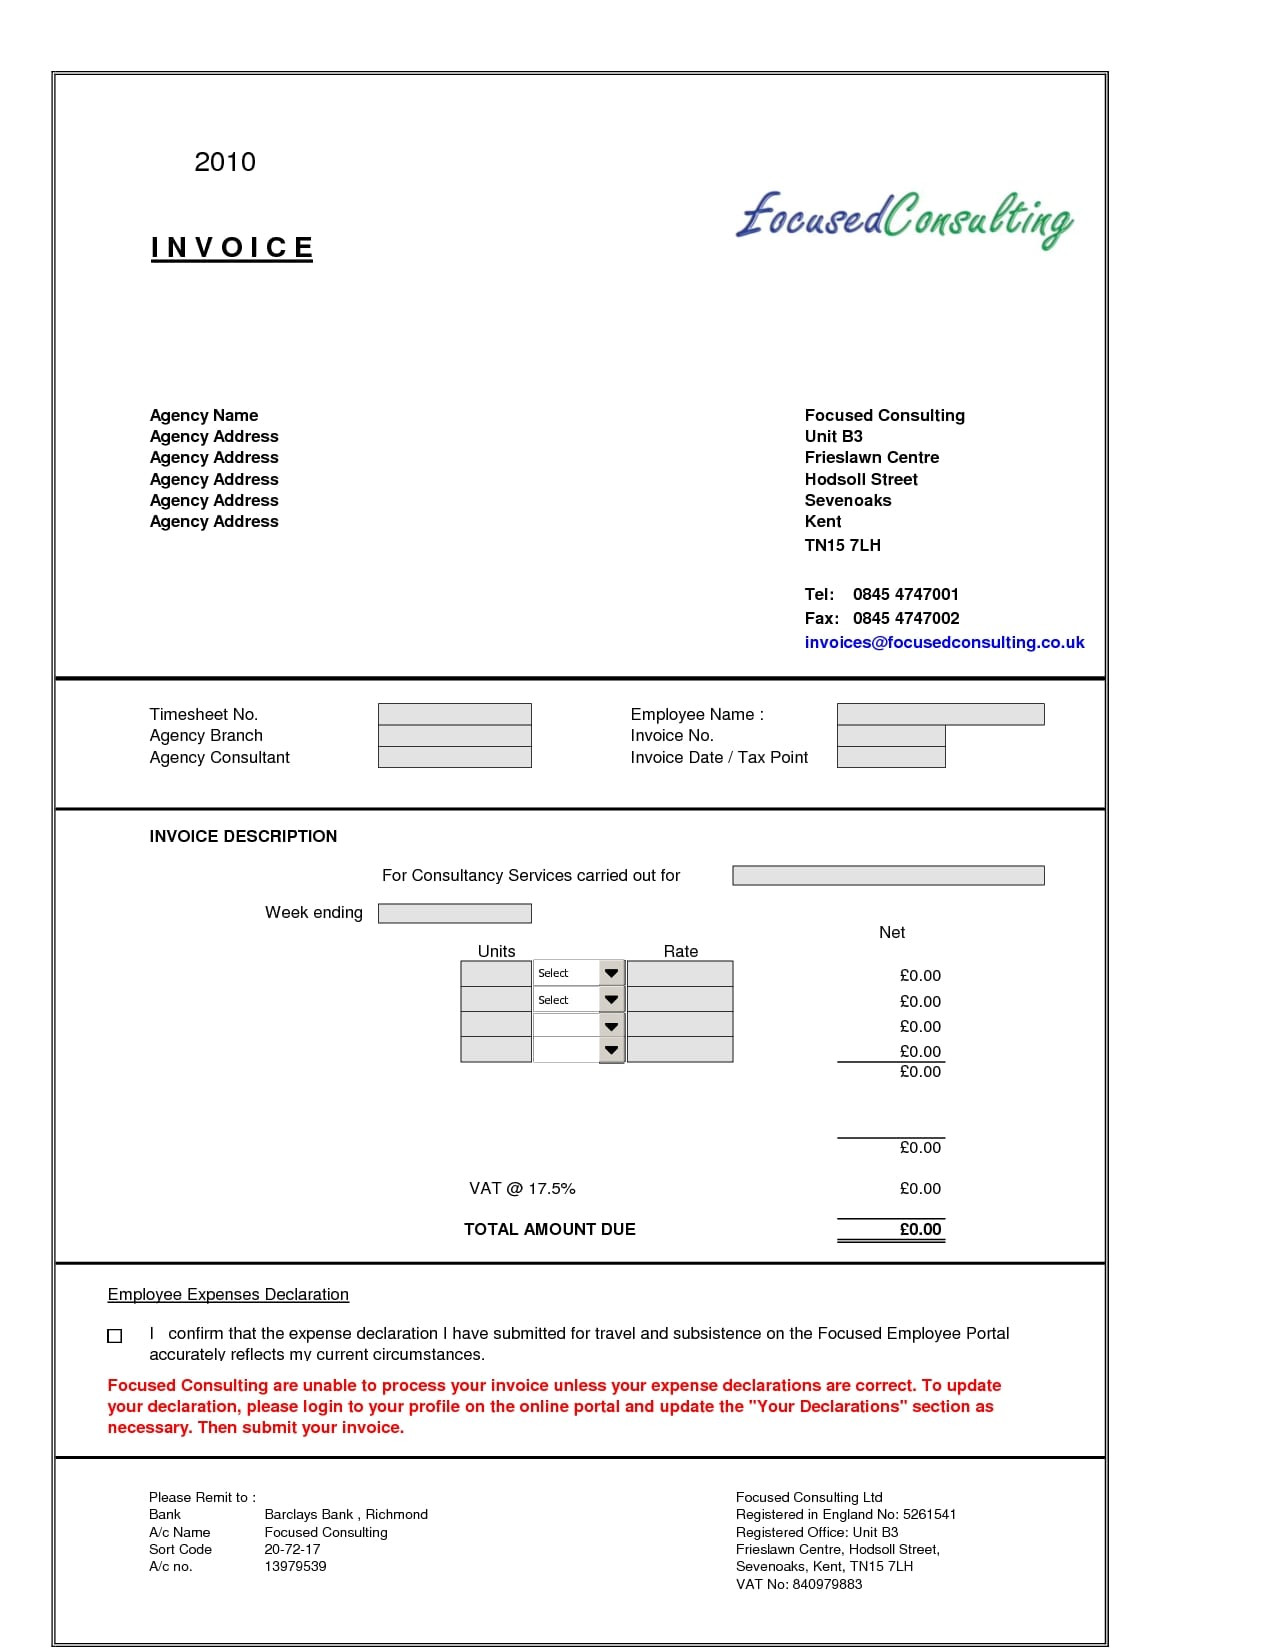 Invoice Template For Consulting Services Consulting Invoice Spreadsheet Templates for Busines Spreadsheet Templates for Busines Consultant Invoice Template Doc